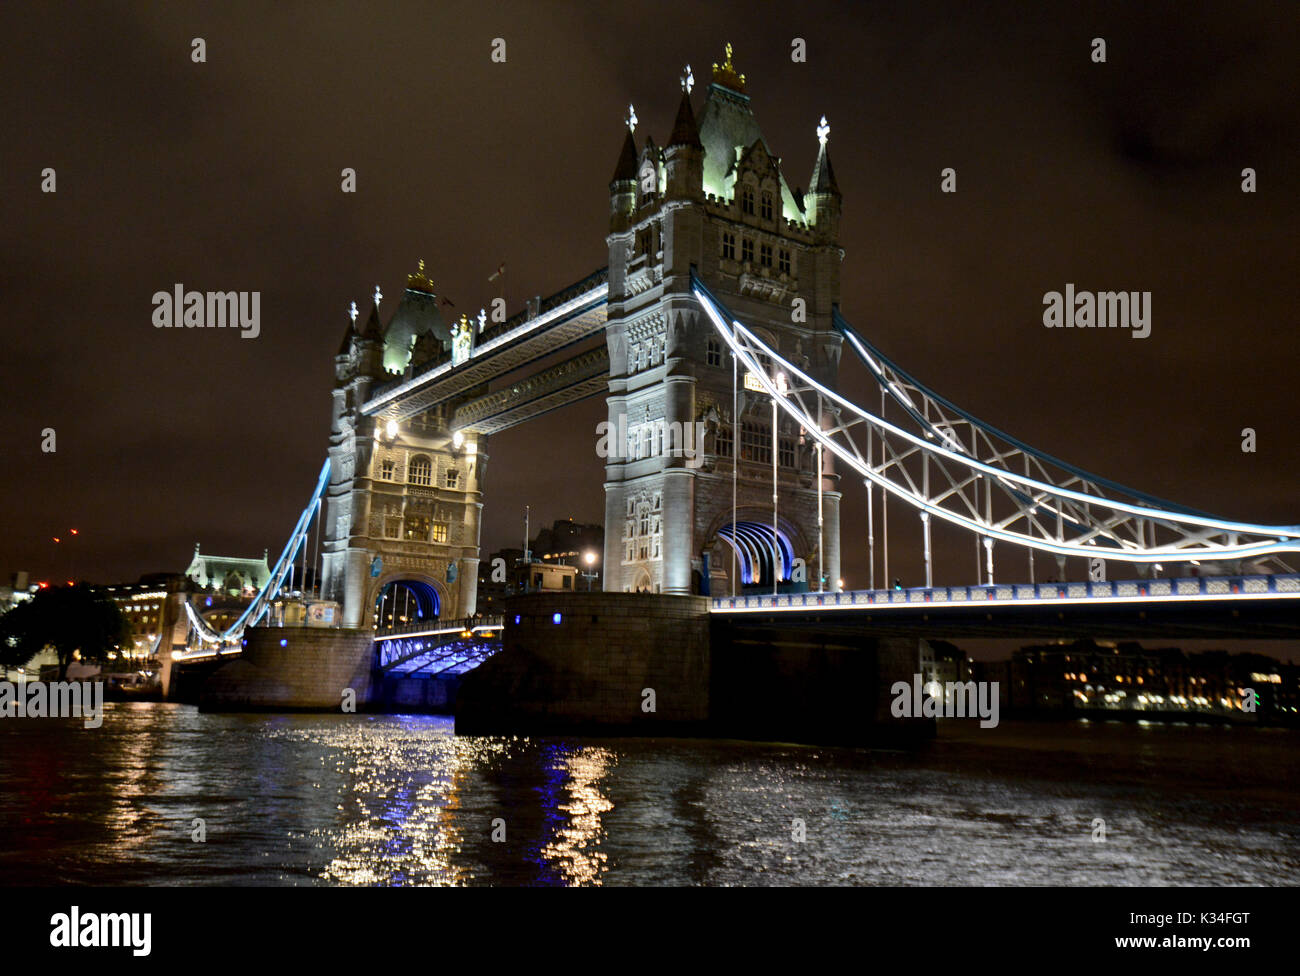 Tower Bridge by night, London - Stock Image